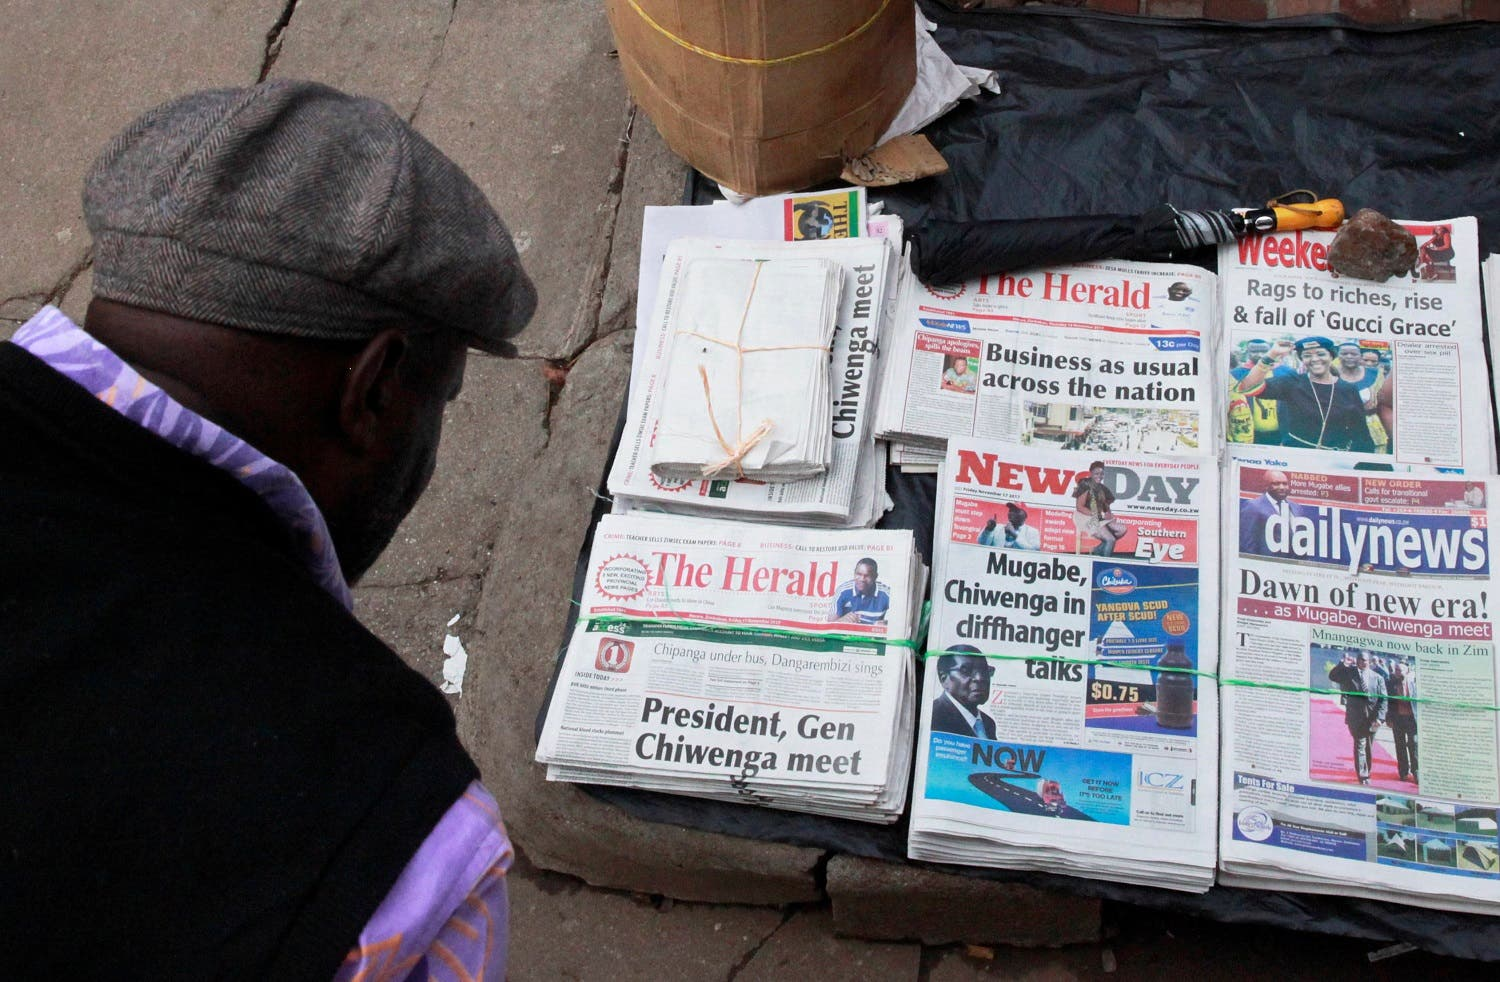 A man reads the headlines of newspapers for sale on a street in Harare, Zimbabwe, on November 17, 2017. (Reuters)